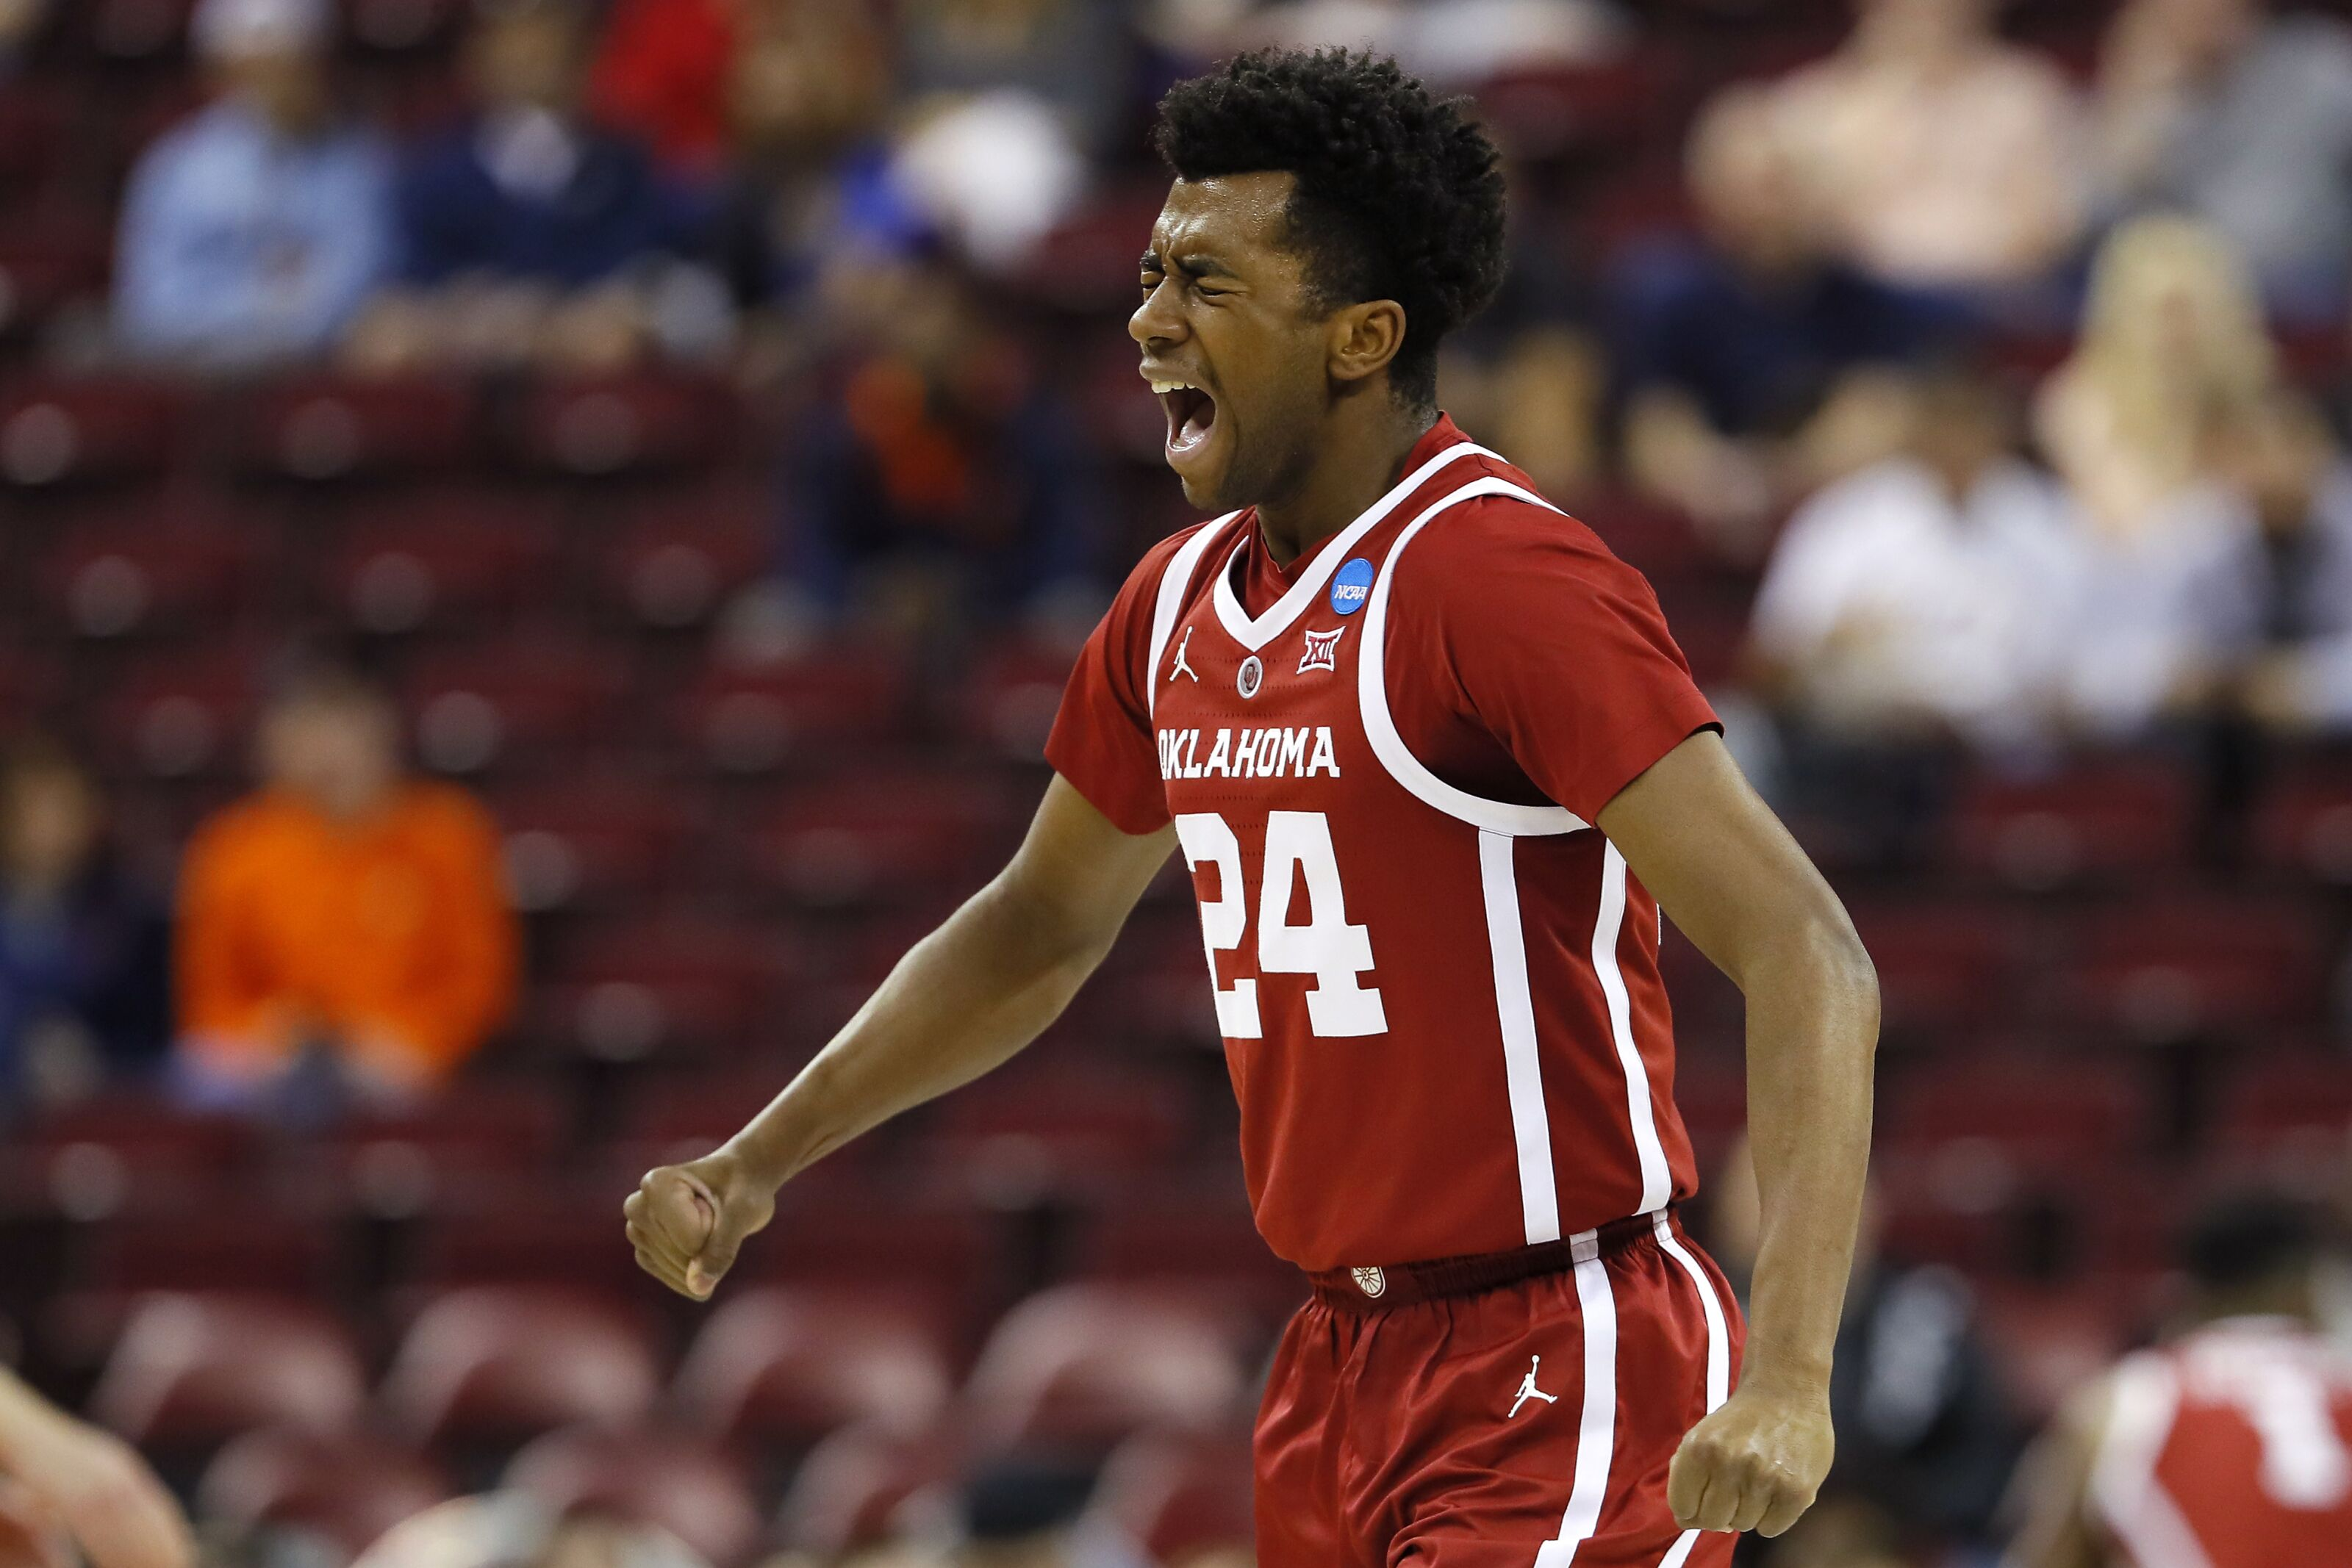 Oklahoma Basketball: Sooners explode in 2nd half to beat Oregon State